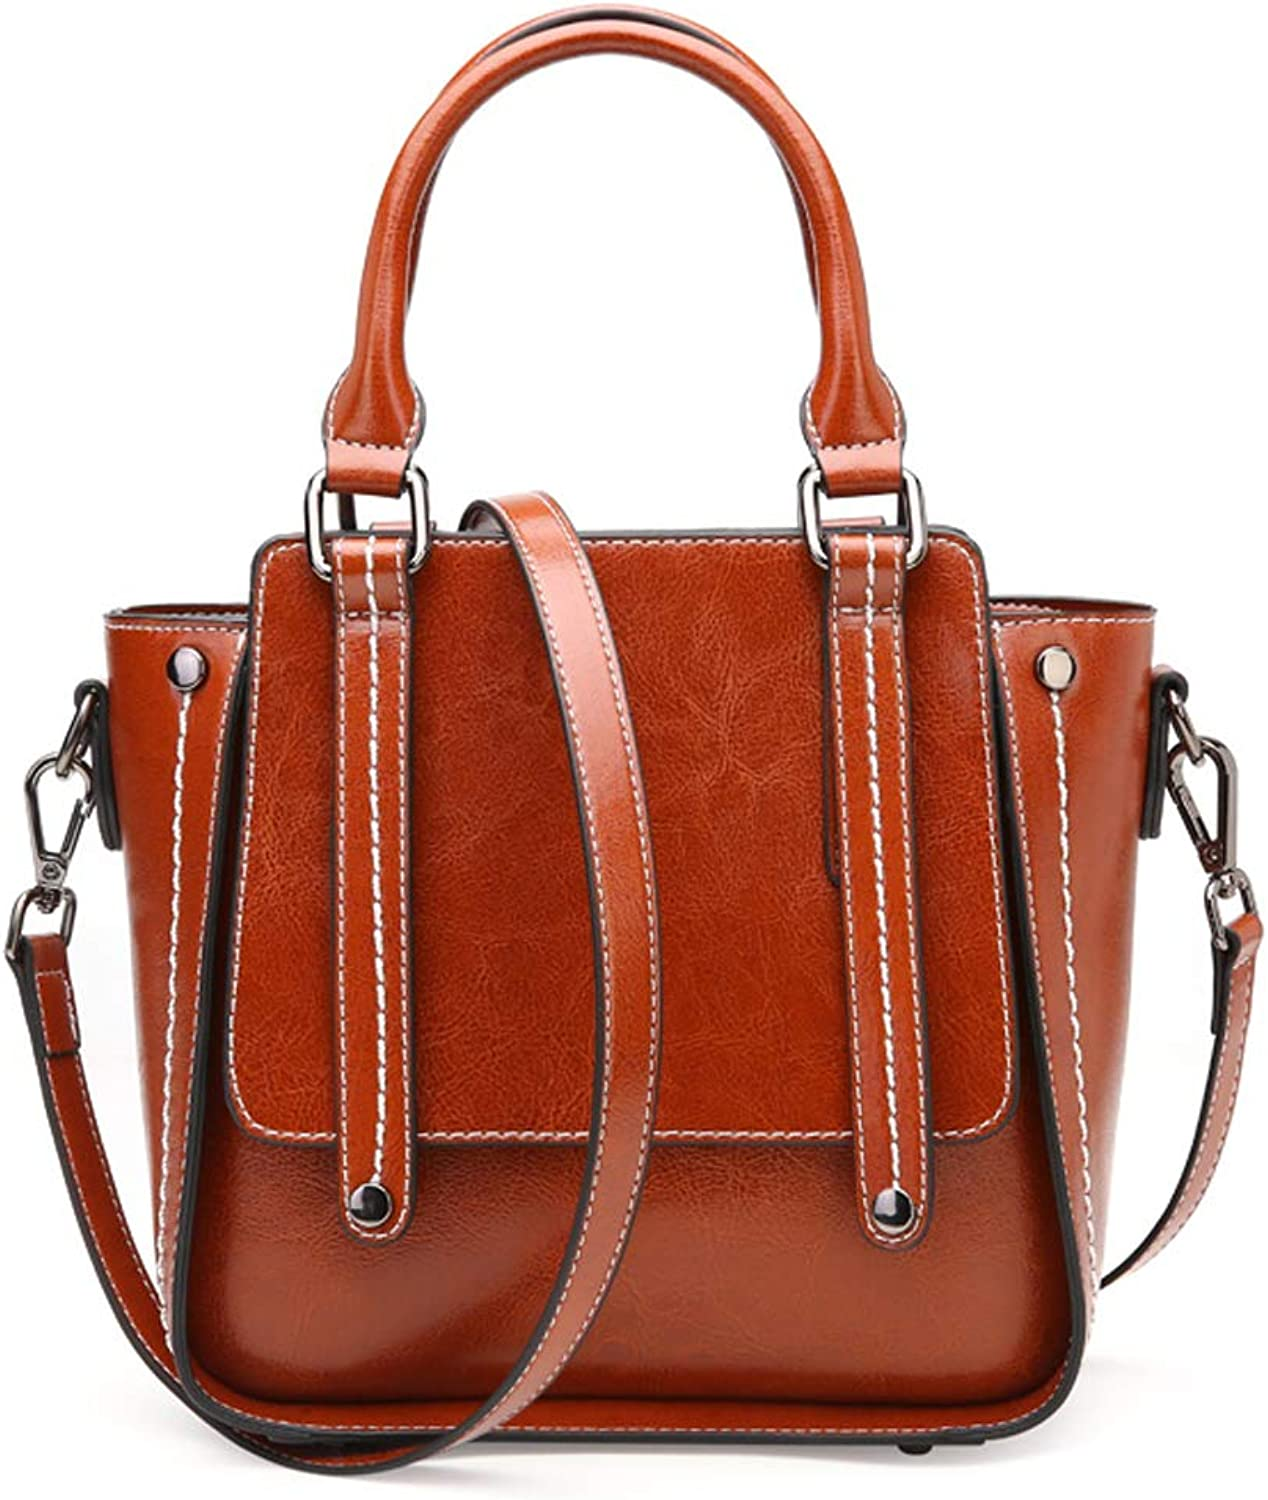 Genuine Leather Crossbody Shoulder Bag Medium Small Tote Satchel Handbag with Strap for Women (Brown)